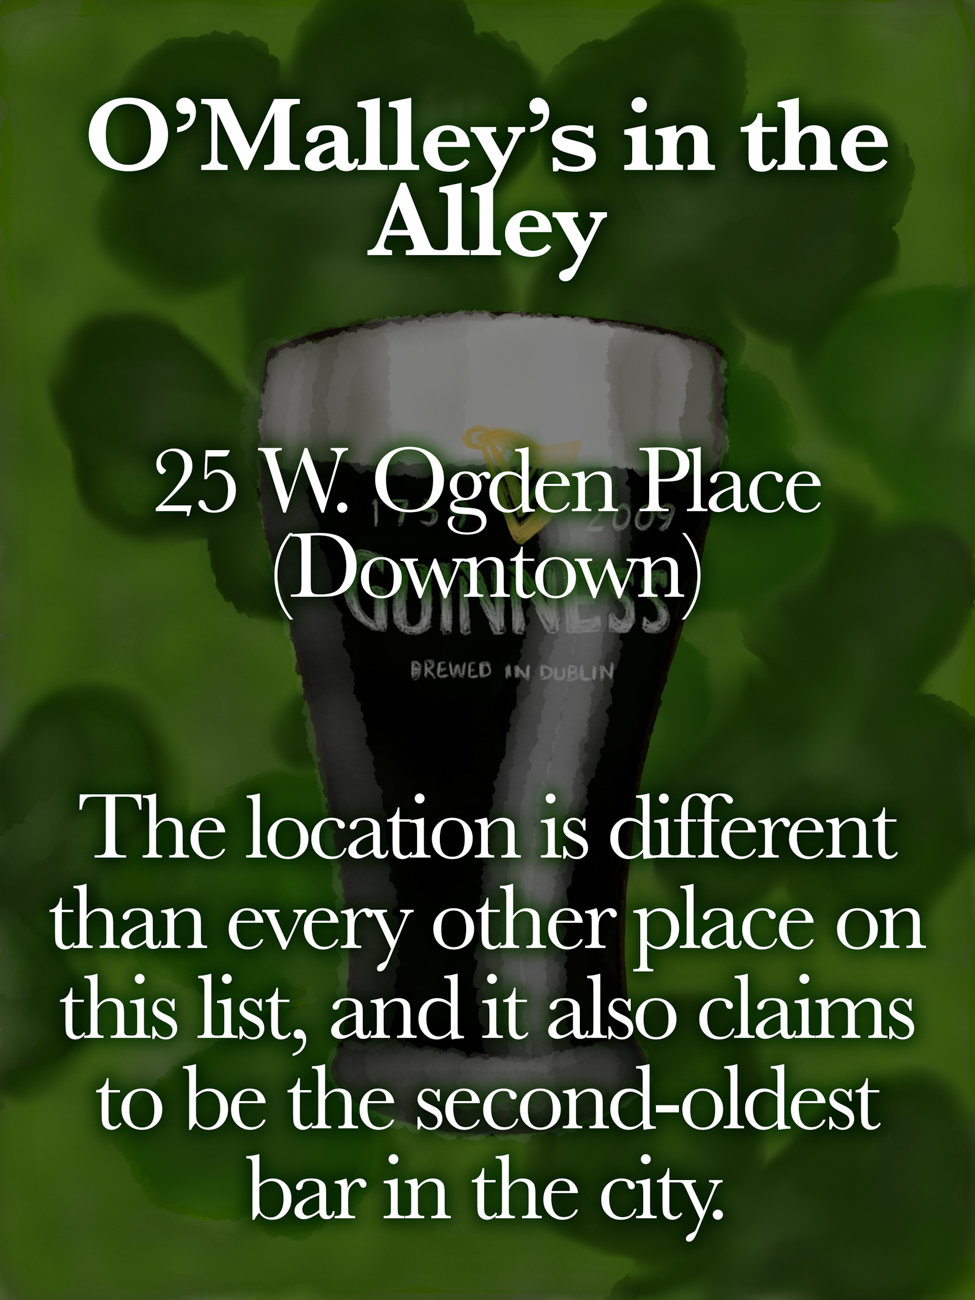 O'Malley's in the Alley / ADDRESS: 25 W Ogden Place (Downtown) // Published: 3.16.19